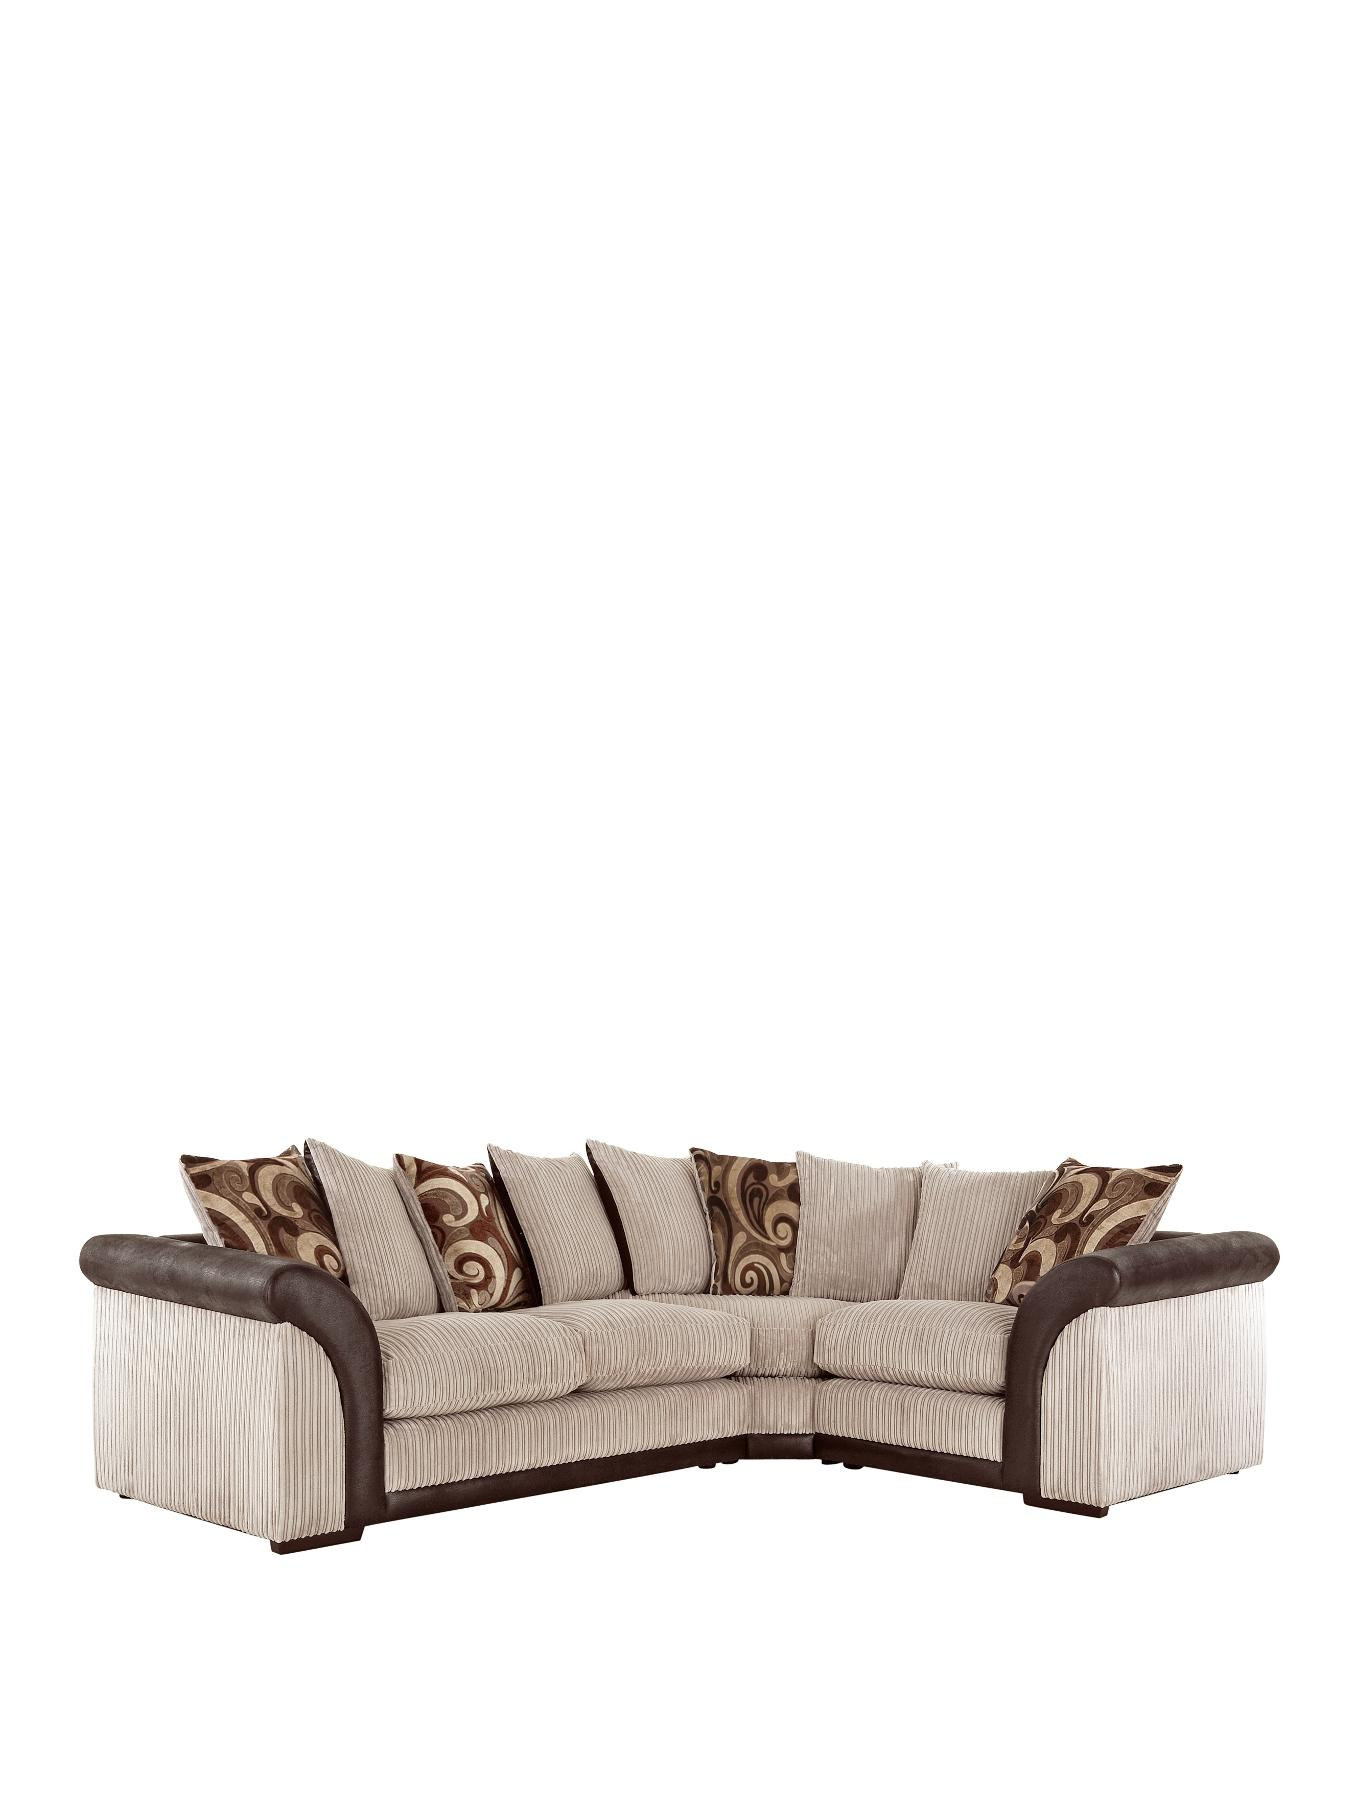 Chicago Right Hand Corner Group with Sofa Bed BlackChocolate